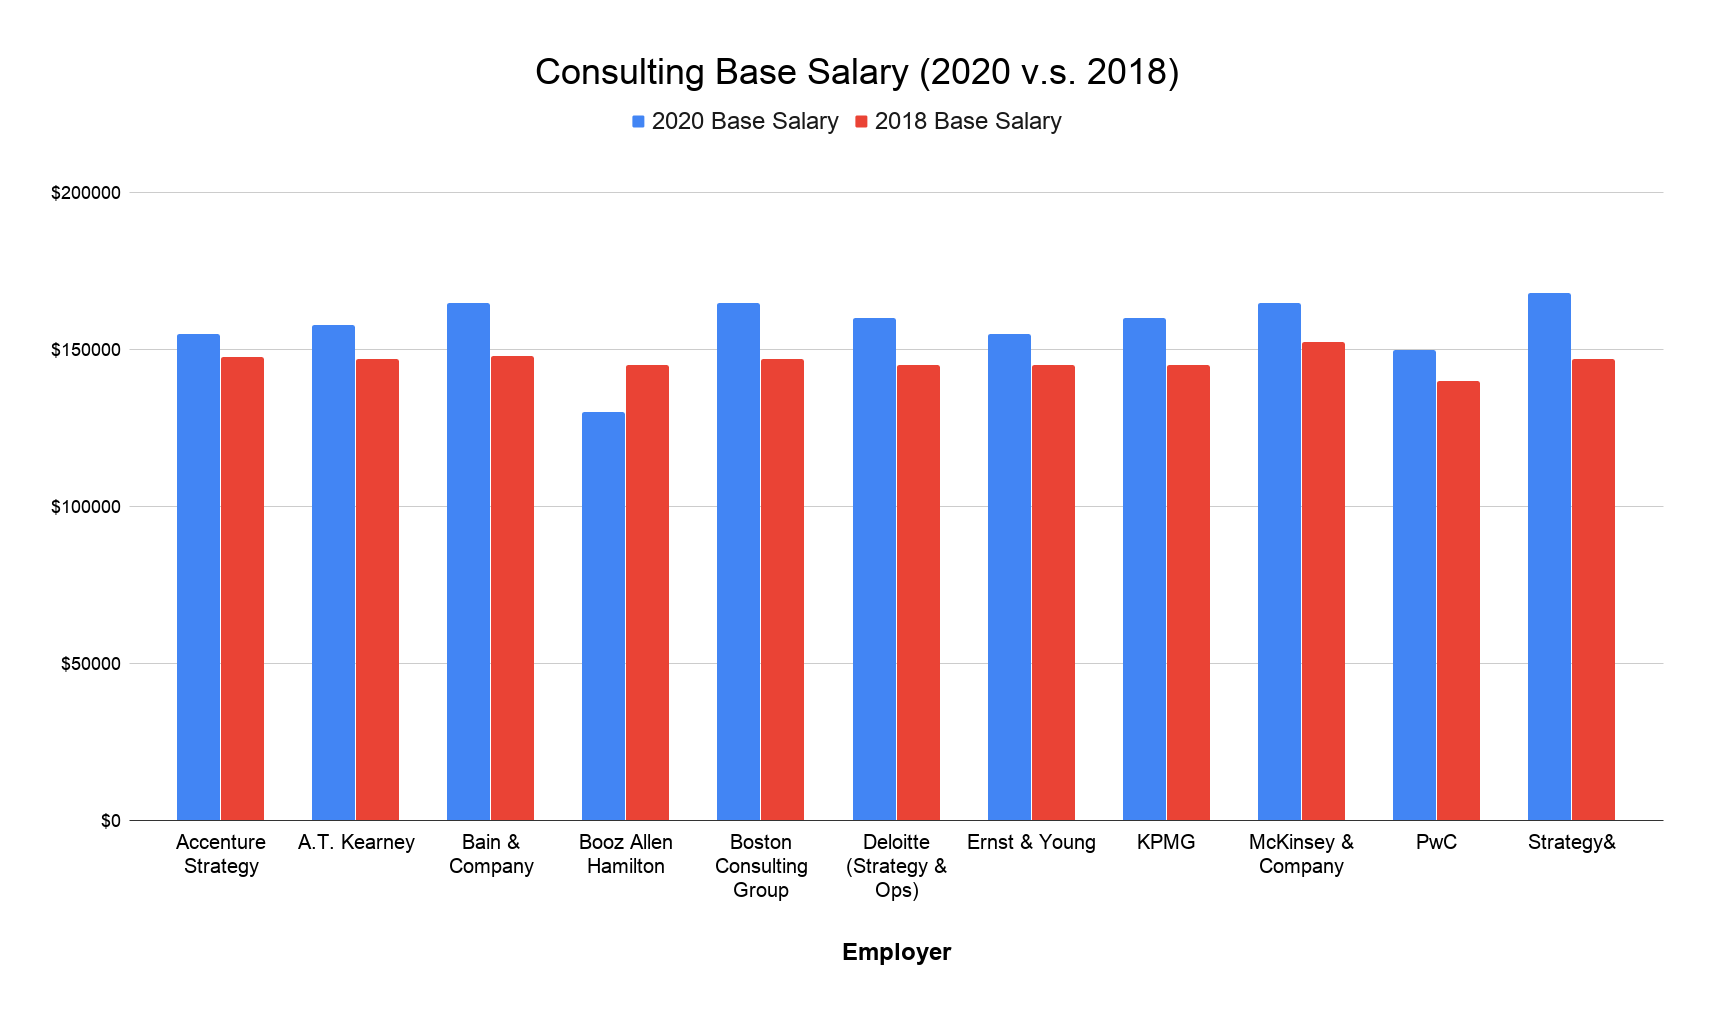 Consulting Base Salary (2020 v.s. 2018)